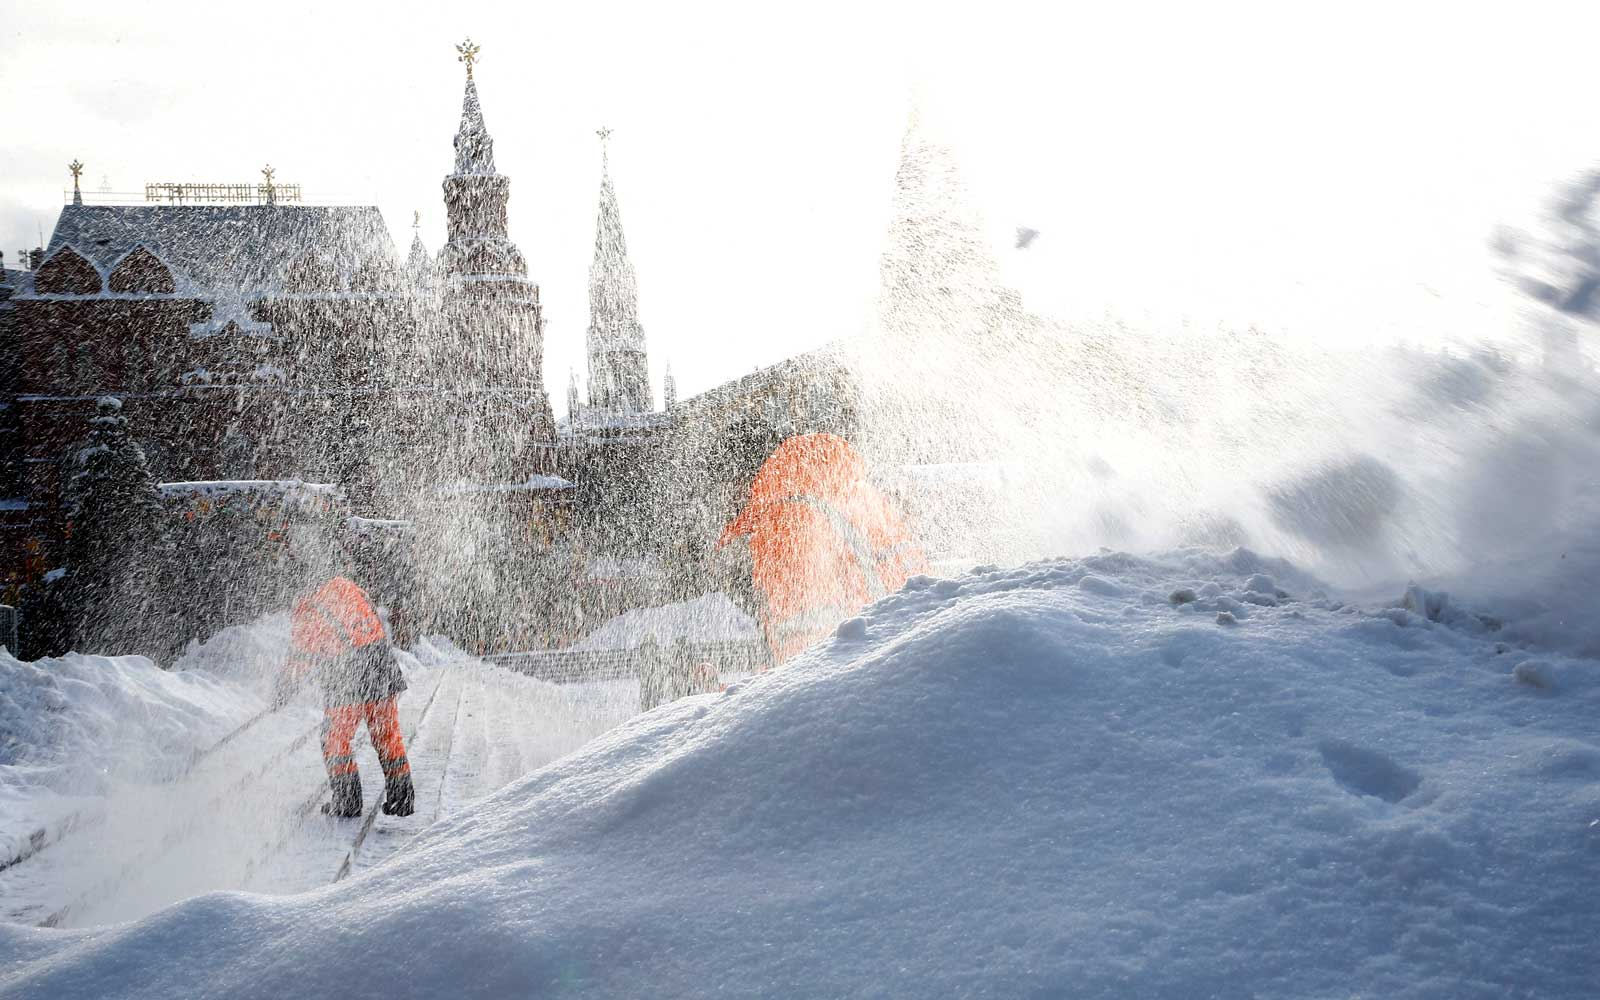 A man cleans the road covered by snow on the Manezhnaya Square as State Historical Museum is seen in the background following four days of snowfall in Moscow, Russia on February 06, 2018.